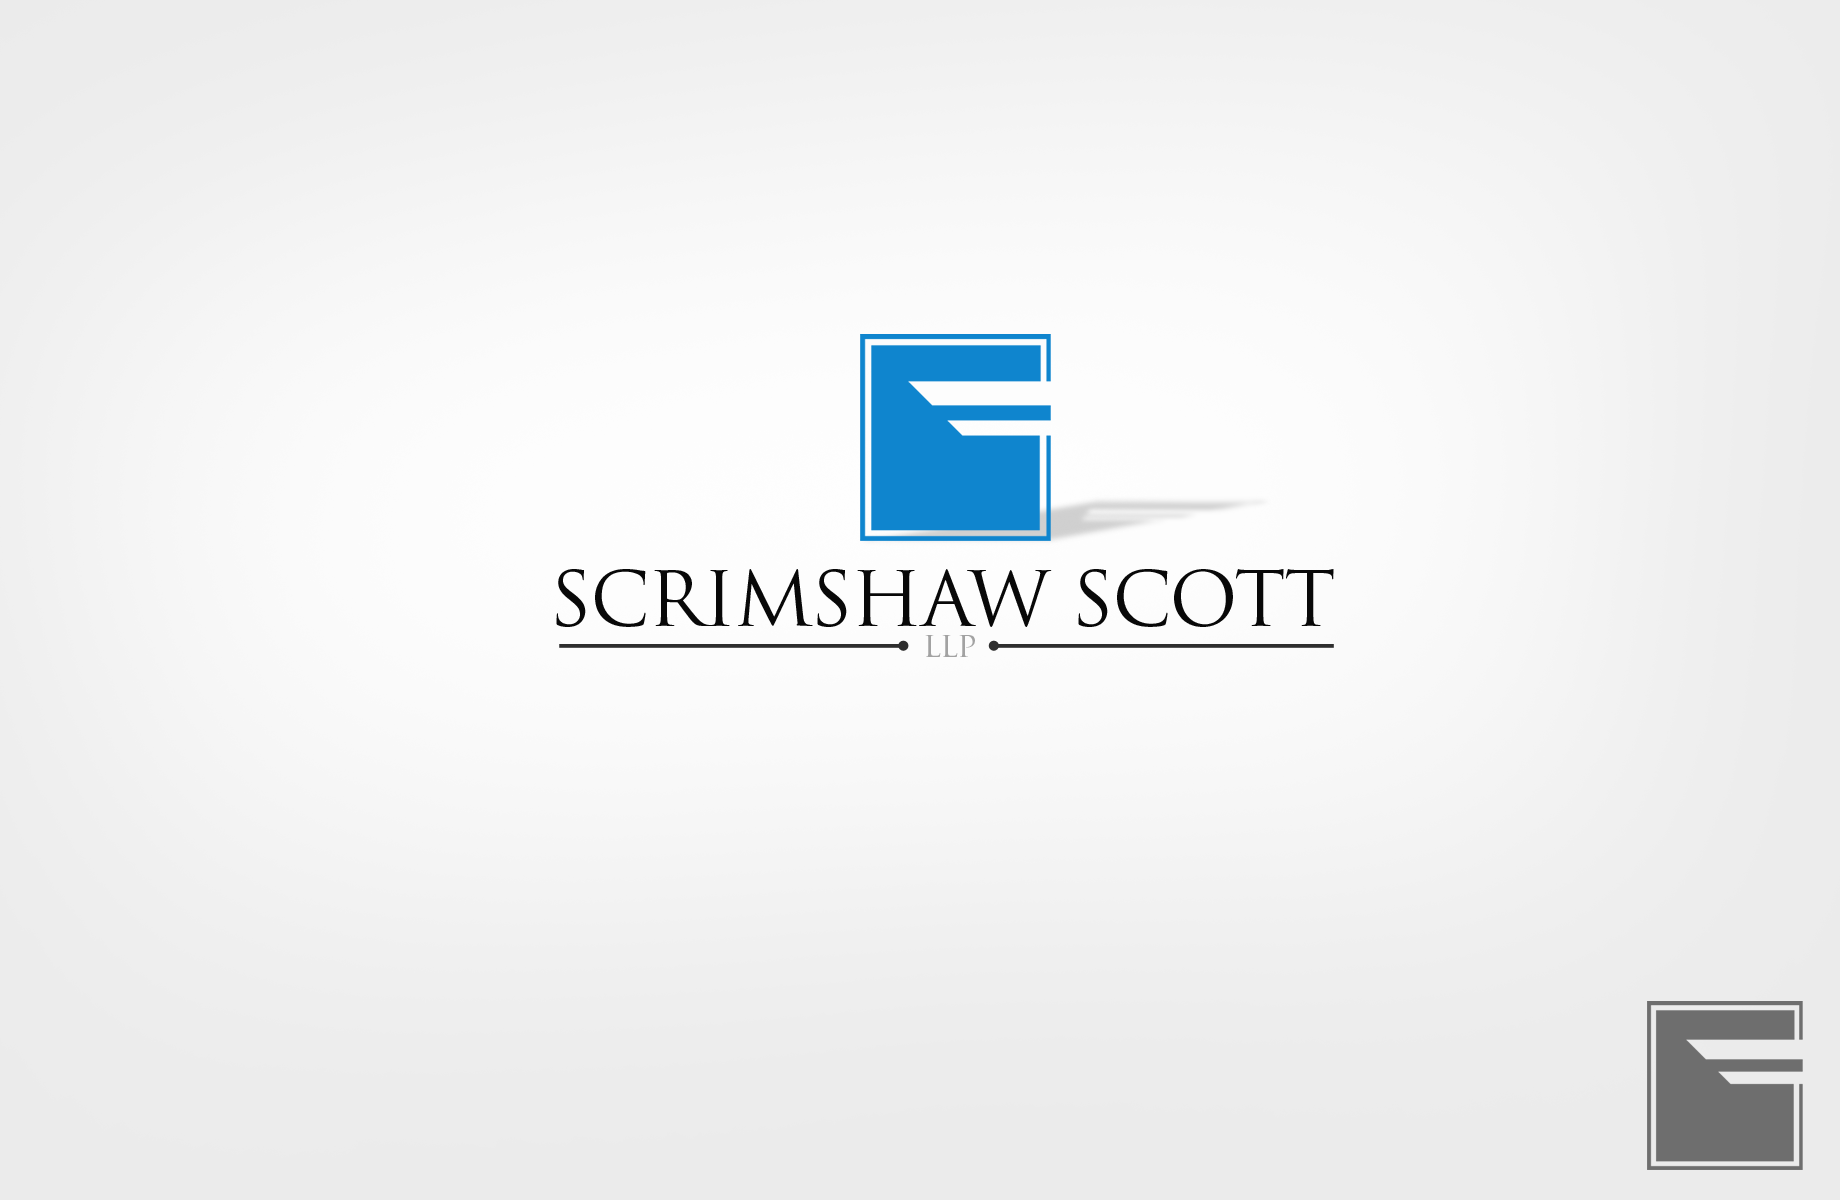 Logo Design by Jan Chua - Entry No. 35 in the Logo Design Contest Creative Logo Design for Scrimshaw Scott LLP.